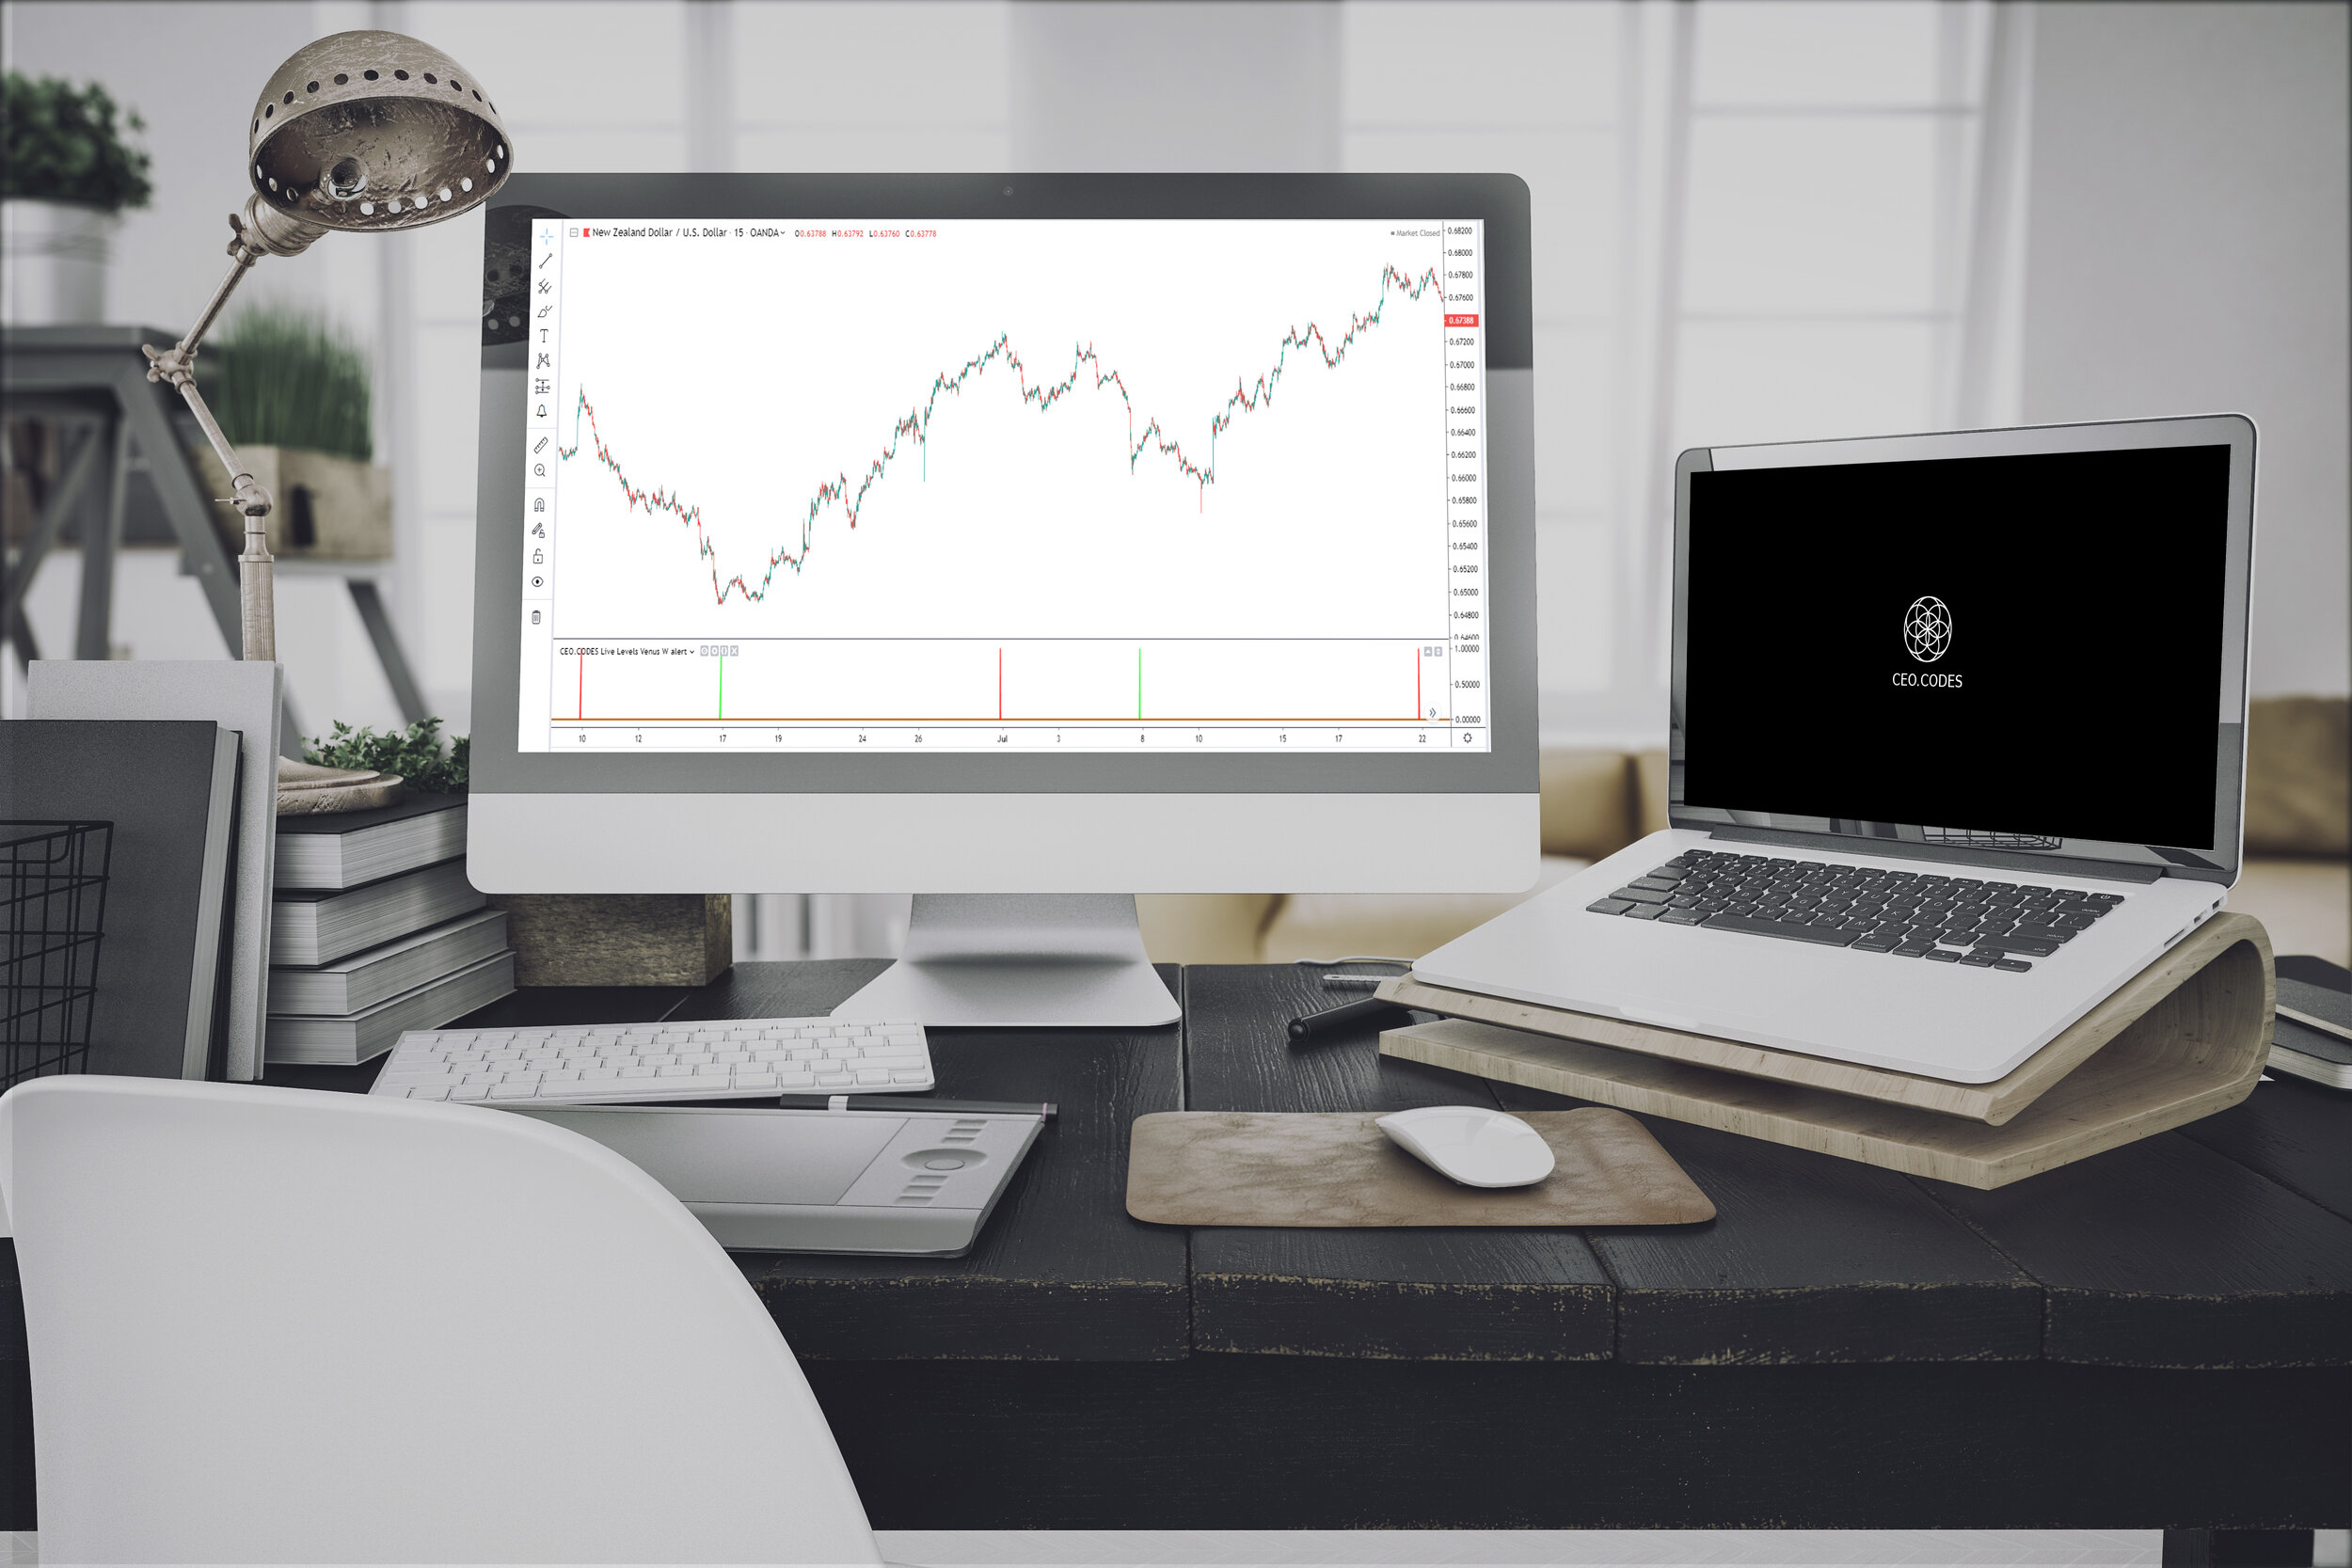 Ceo Codes Trading Indicator System